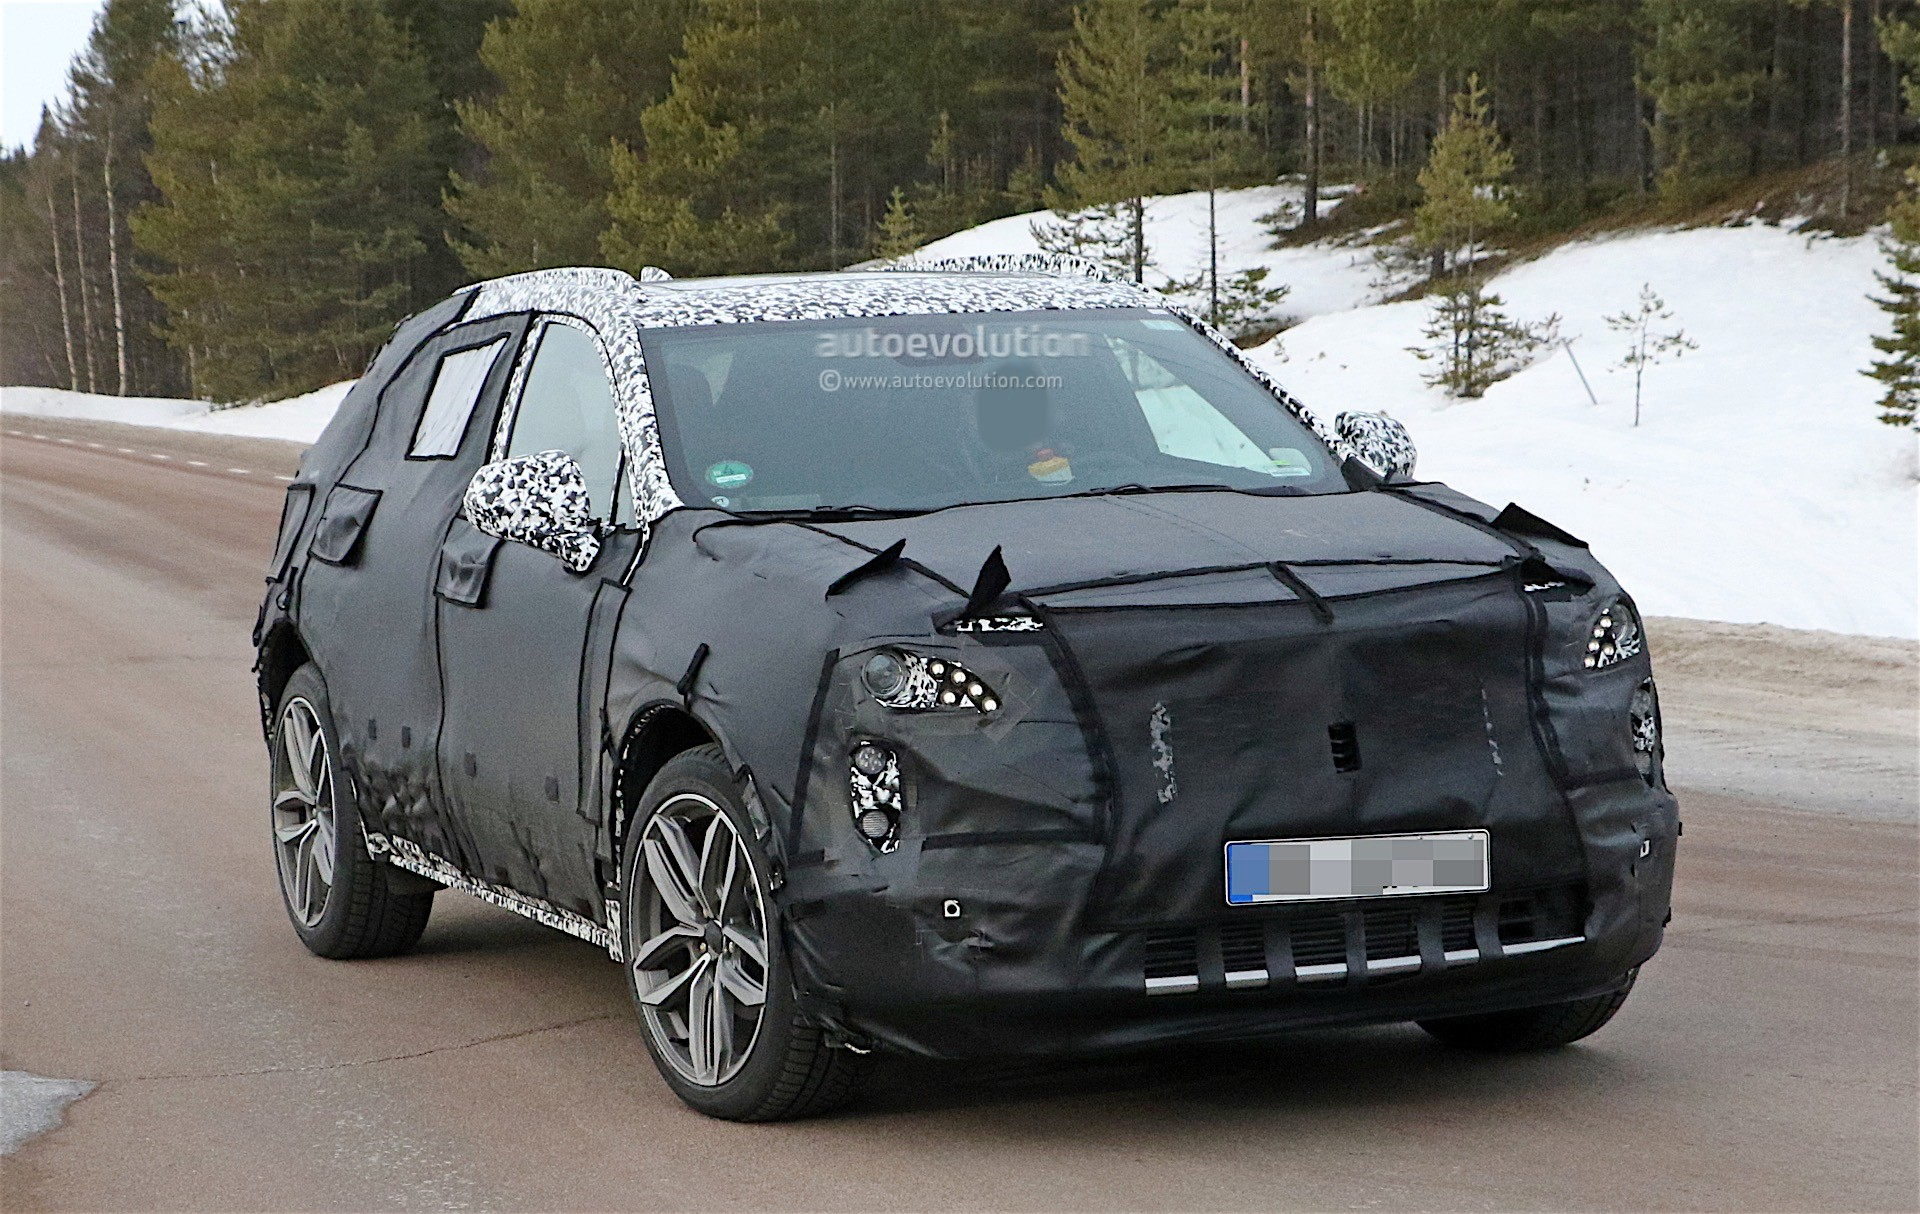 Cadillac President Confirms XT4 Name For Small Crossover - autoevolution